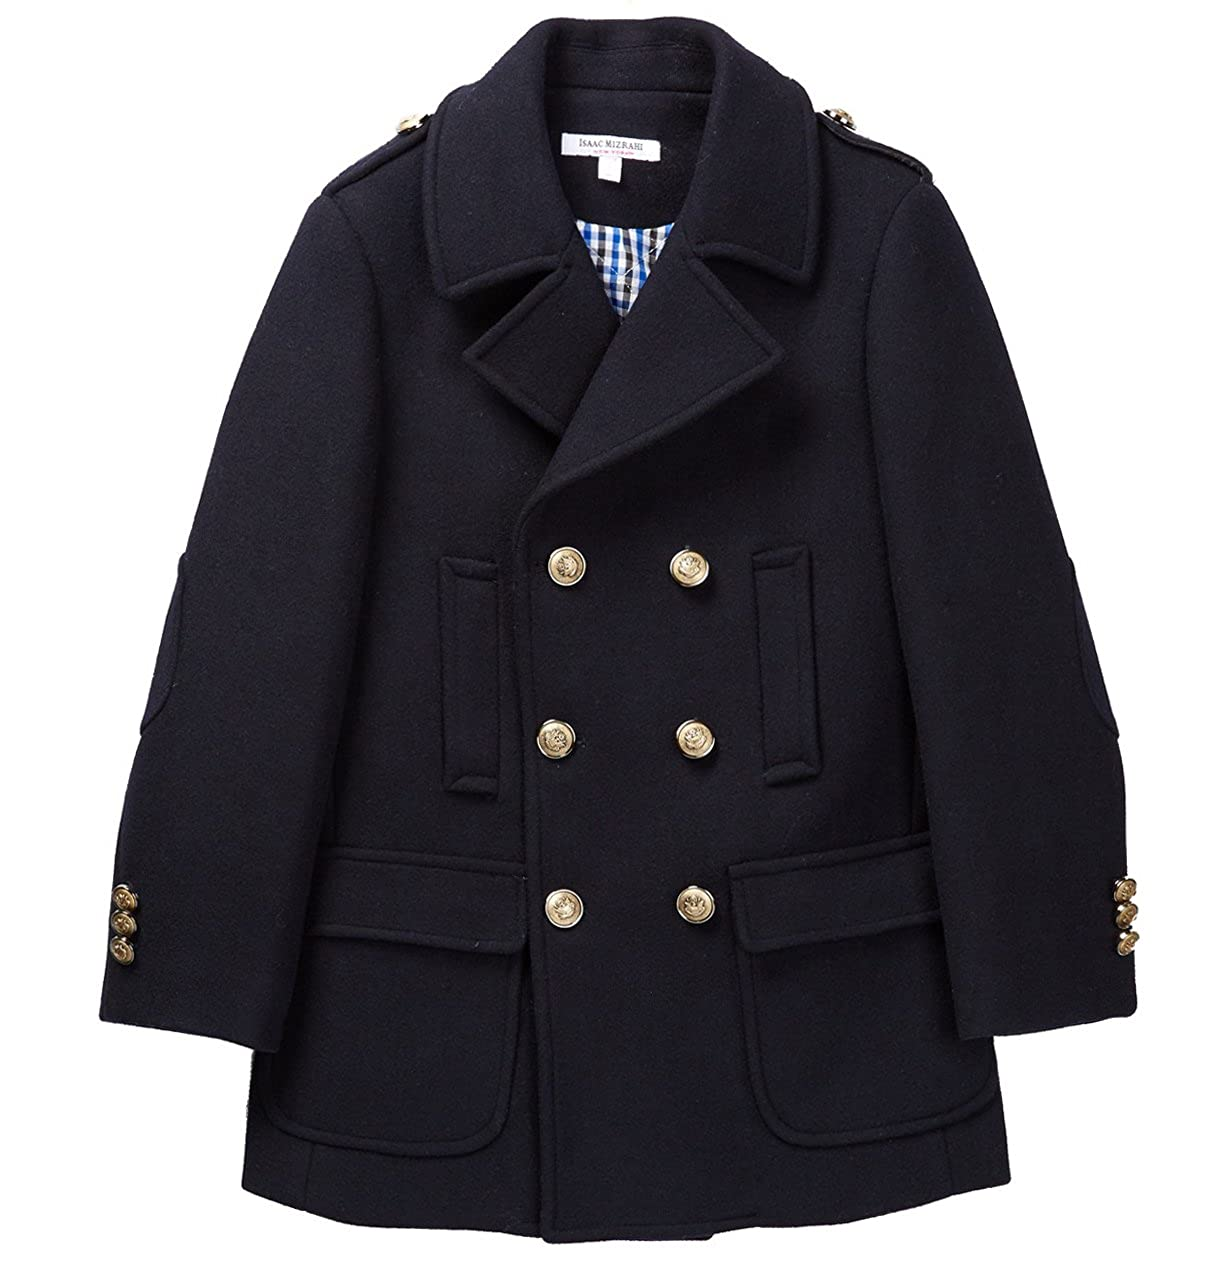 Isaac Mizrahi Boys' 2-20 Double Breasted Solid Wool Pea Coat With Epaulettes CT1009